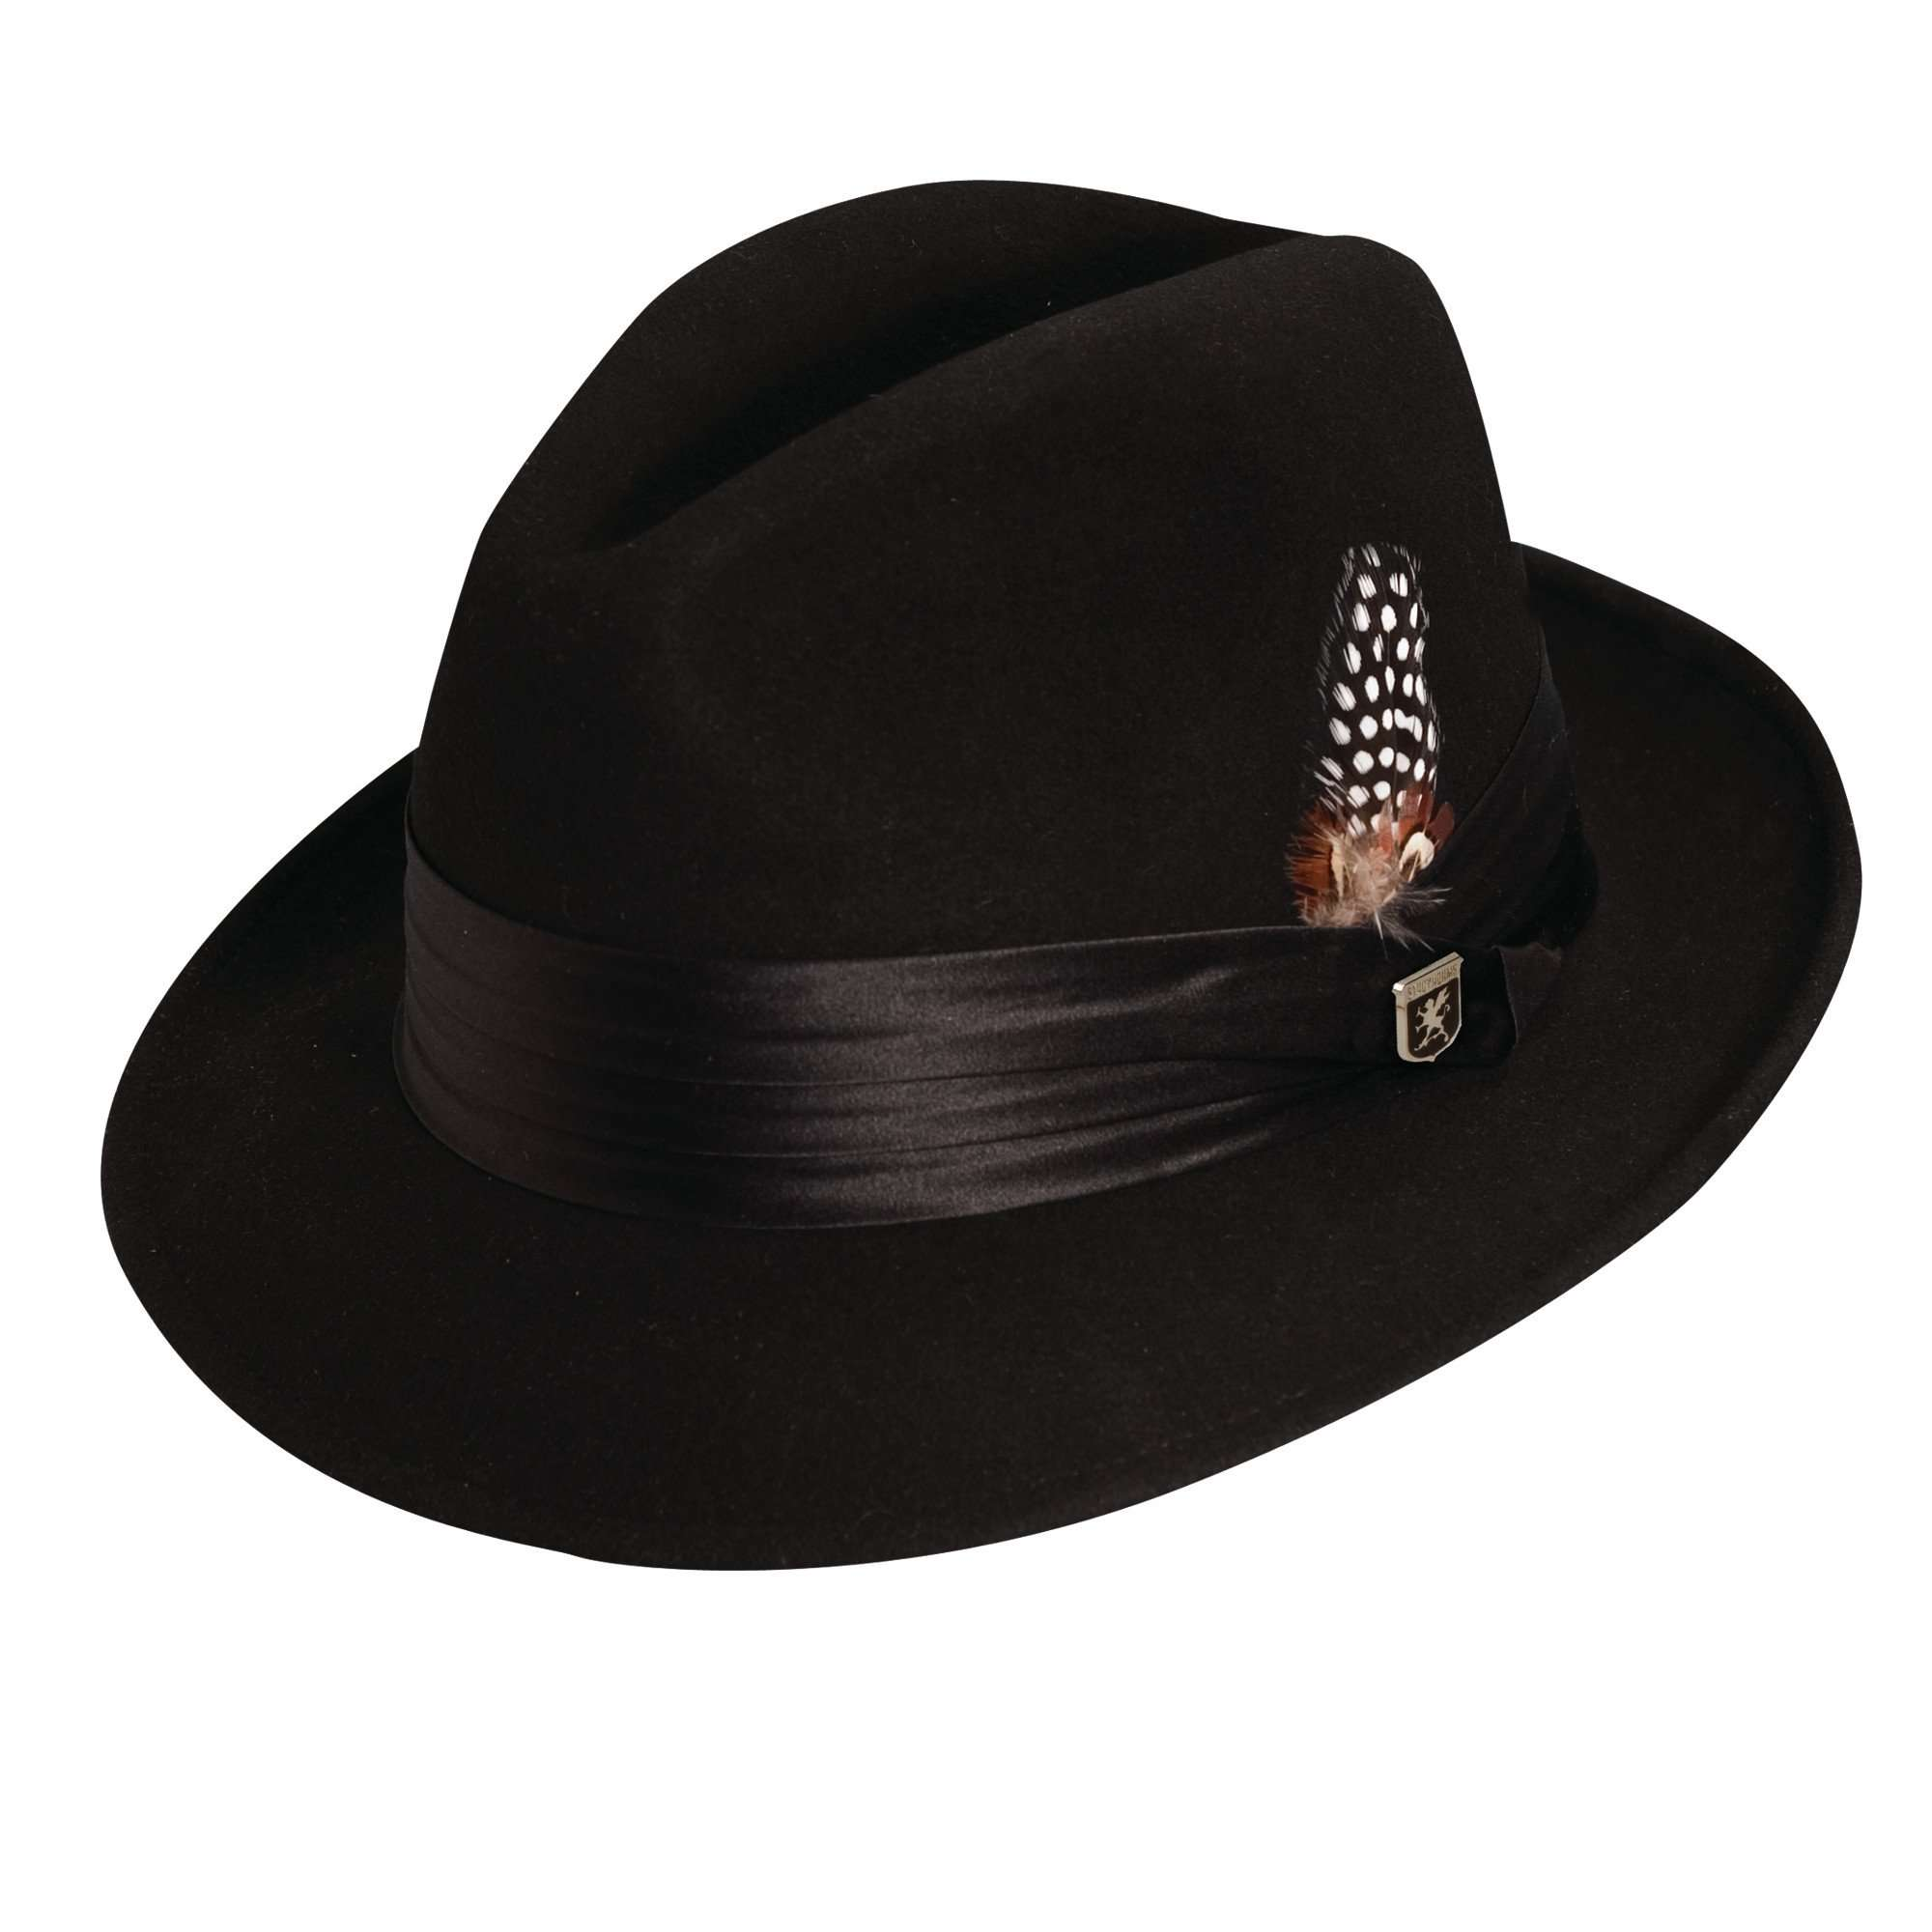 Stacy Adams Snap Brim Fedora - Black - SetarTrading Hats da61a3890387